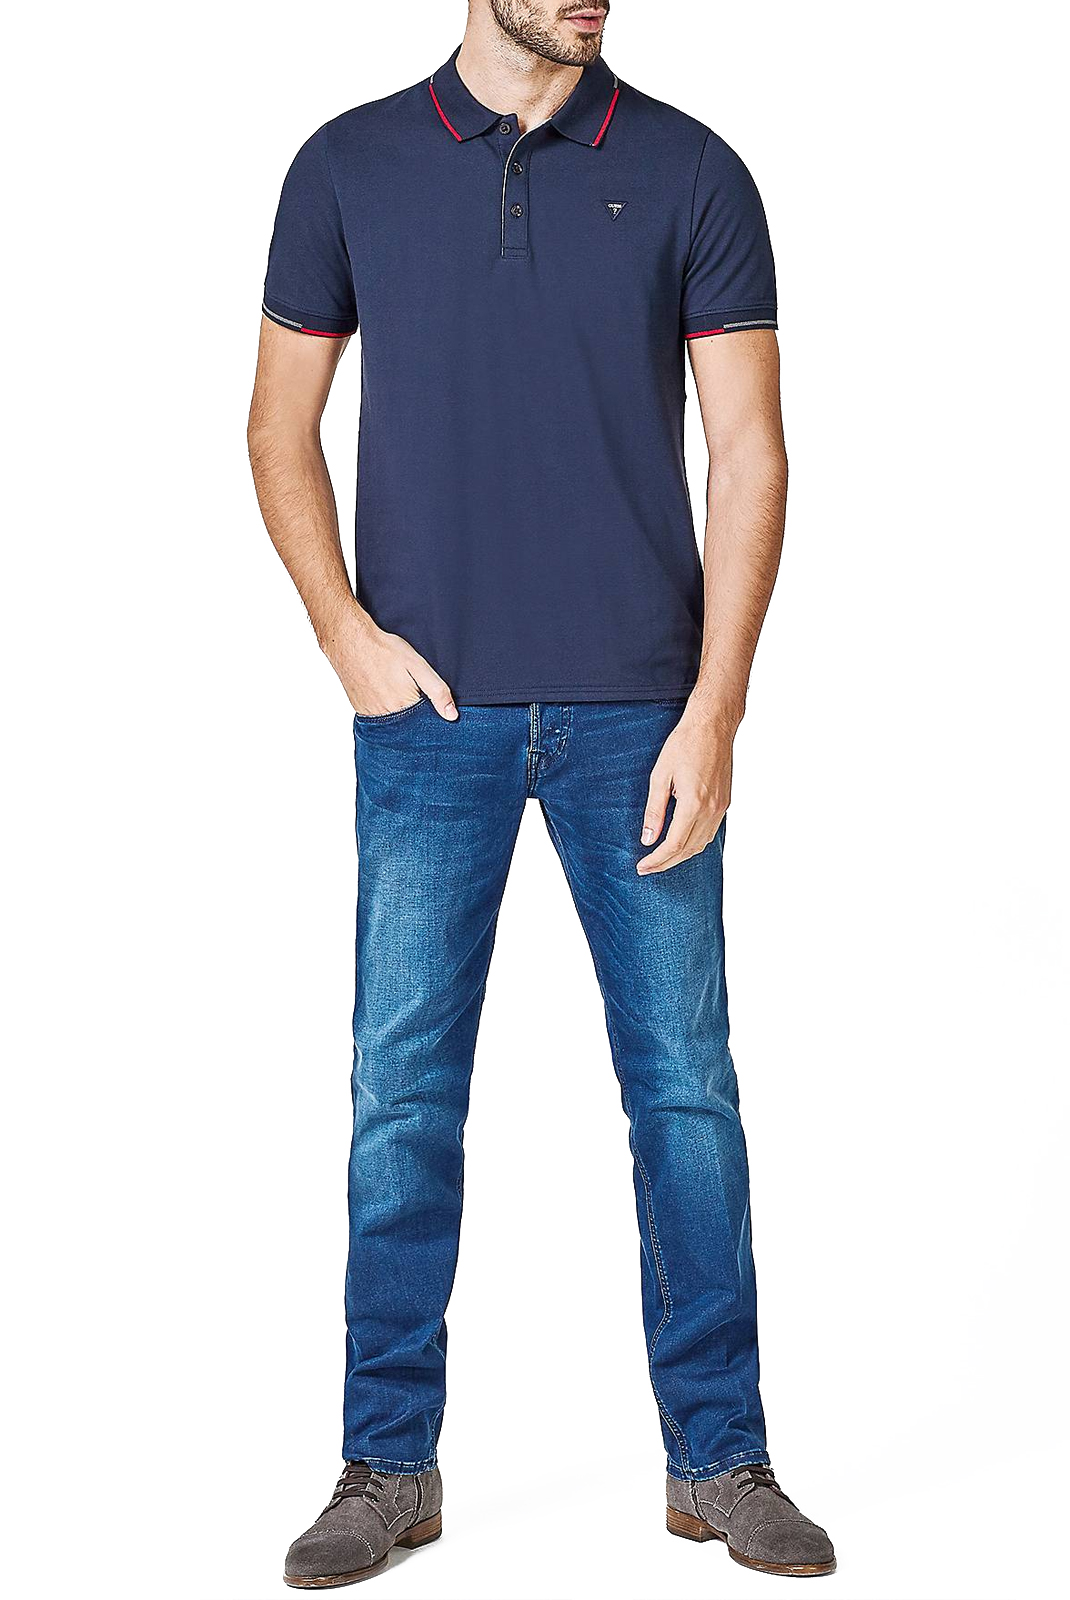 Polos  Guess jeans M83P03 K4KV0 G720 BLUE NAVY